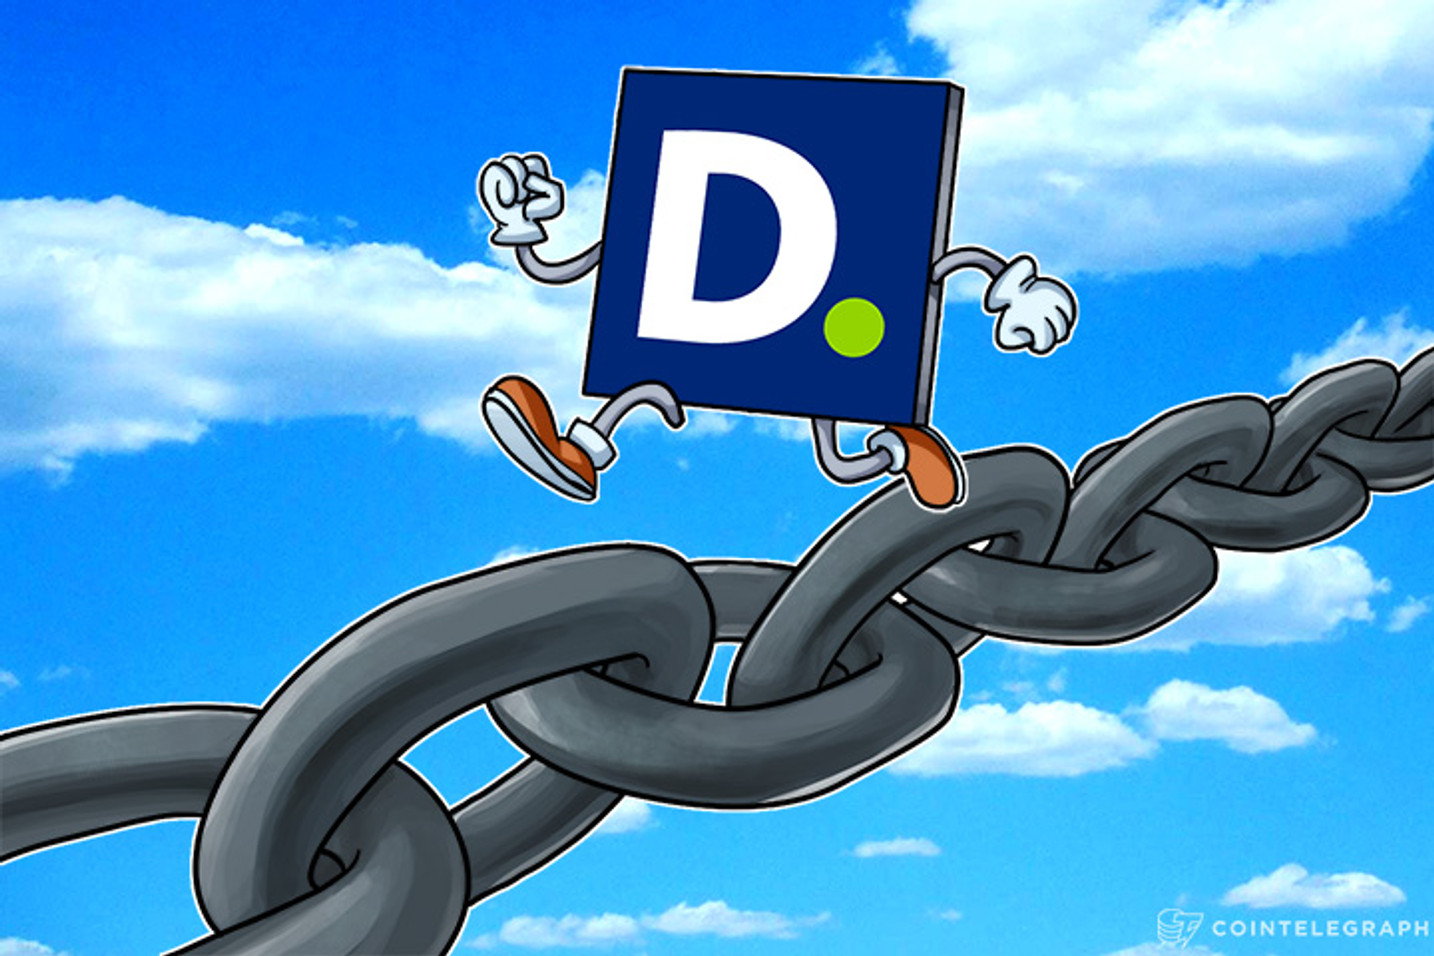 Deloitte: Banks Need to Form Consortiums For Blockchain to Work